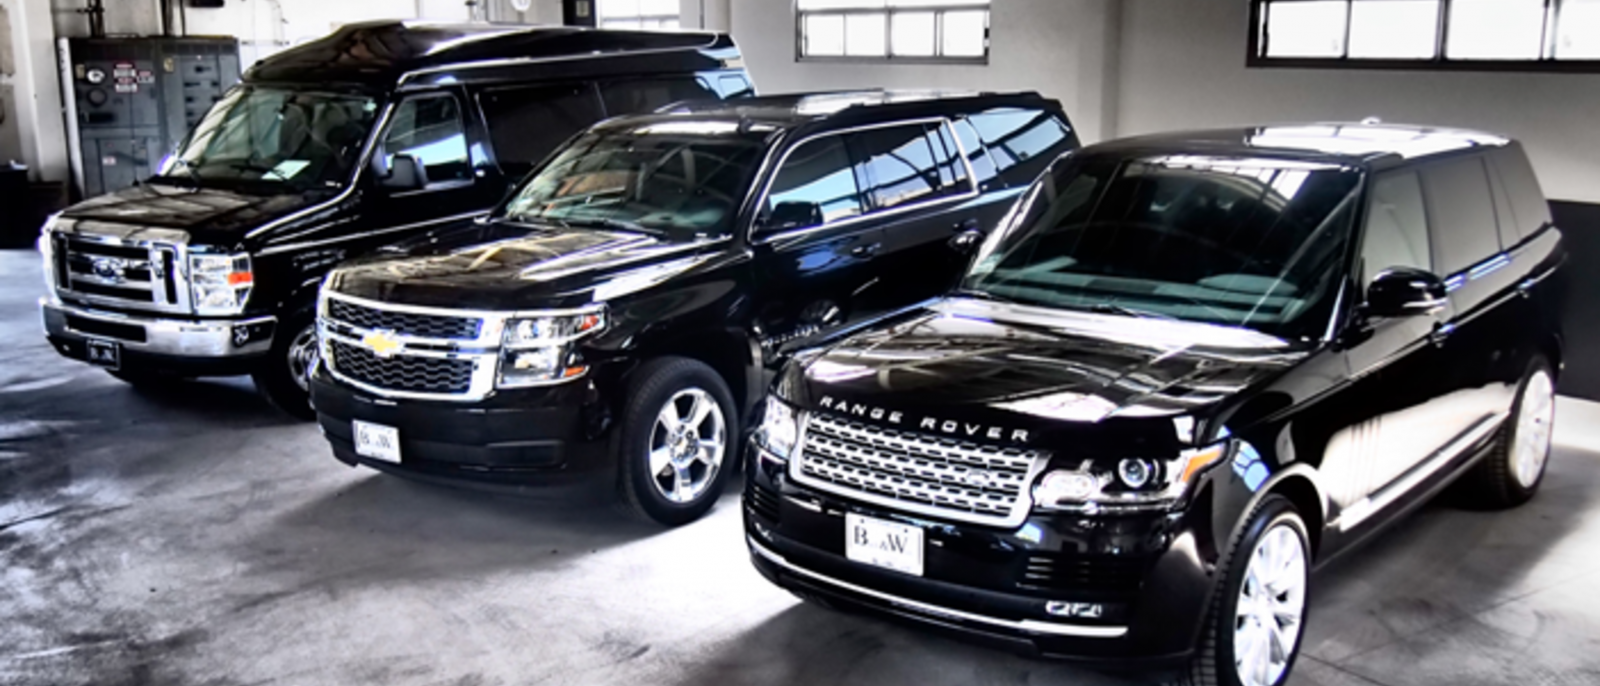 Black & White Car Rental